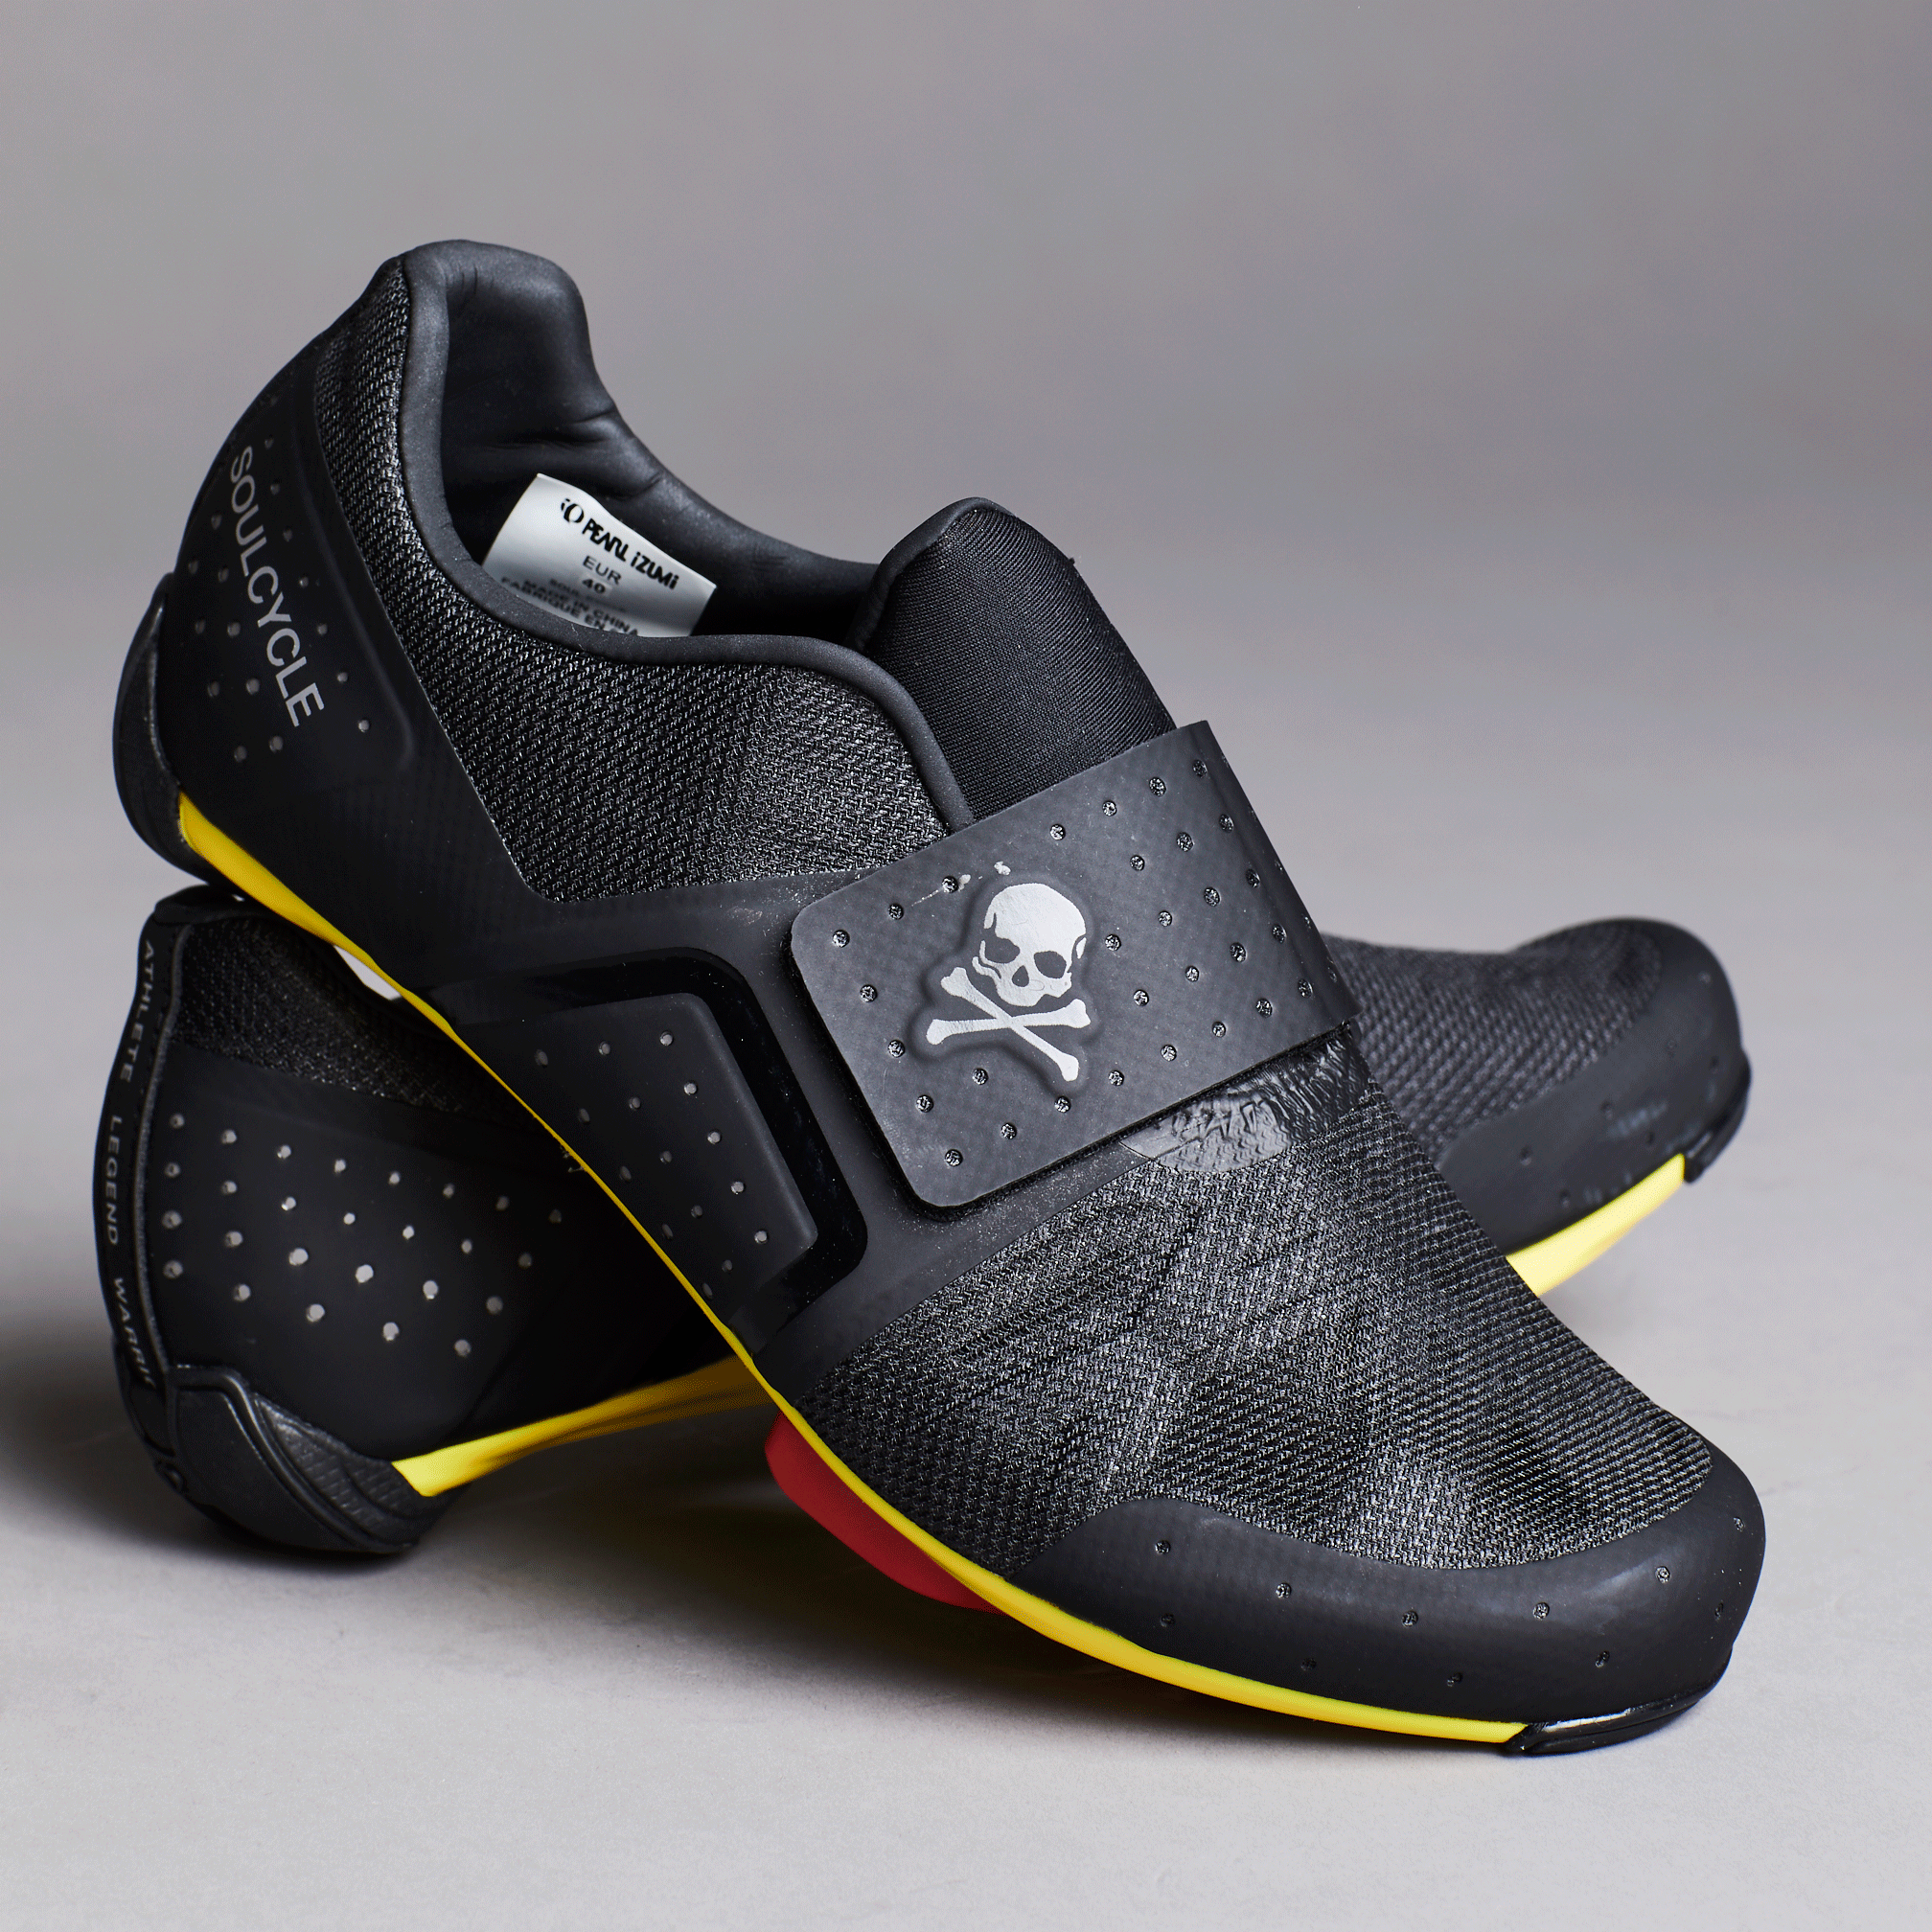 627cc35cd23 SOUL Legend Cycling Shoe  200